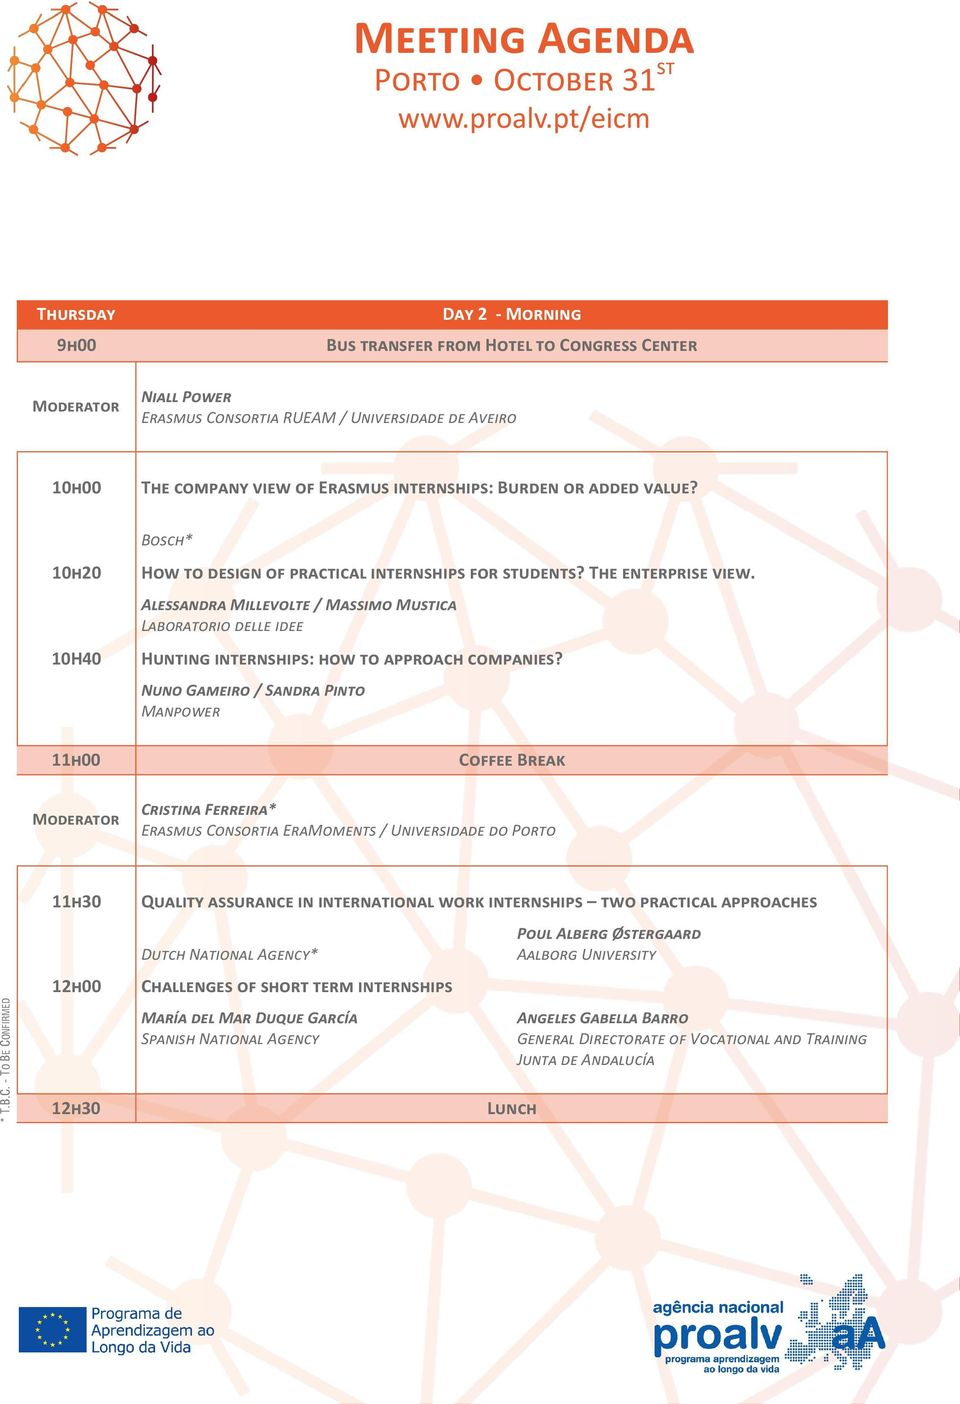 Burden or added value? 10h20 10H40 11h00 Bosch* How to design of practical internships for students? The enterprise view.